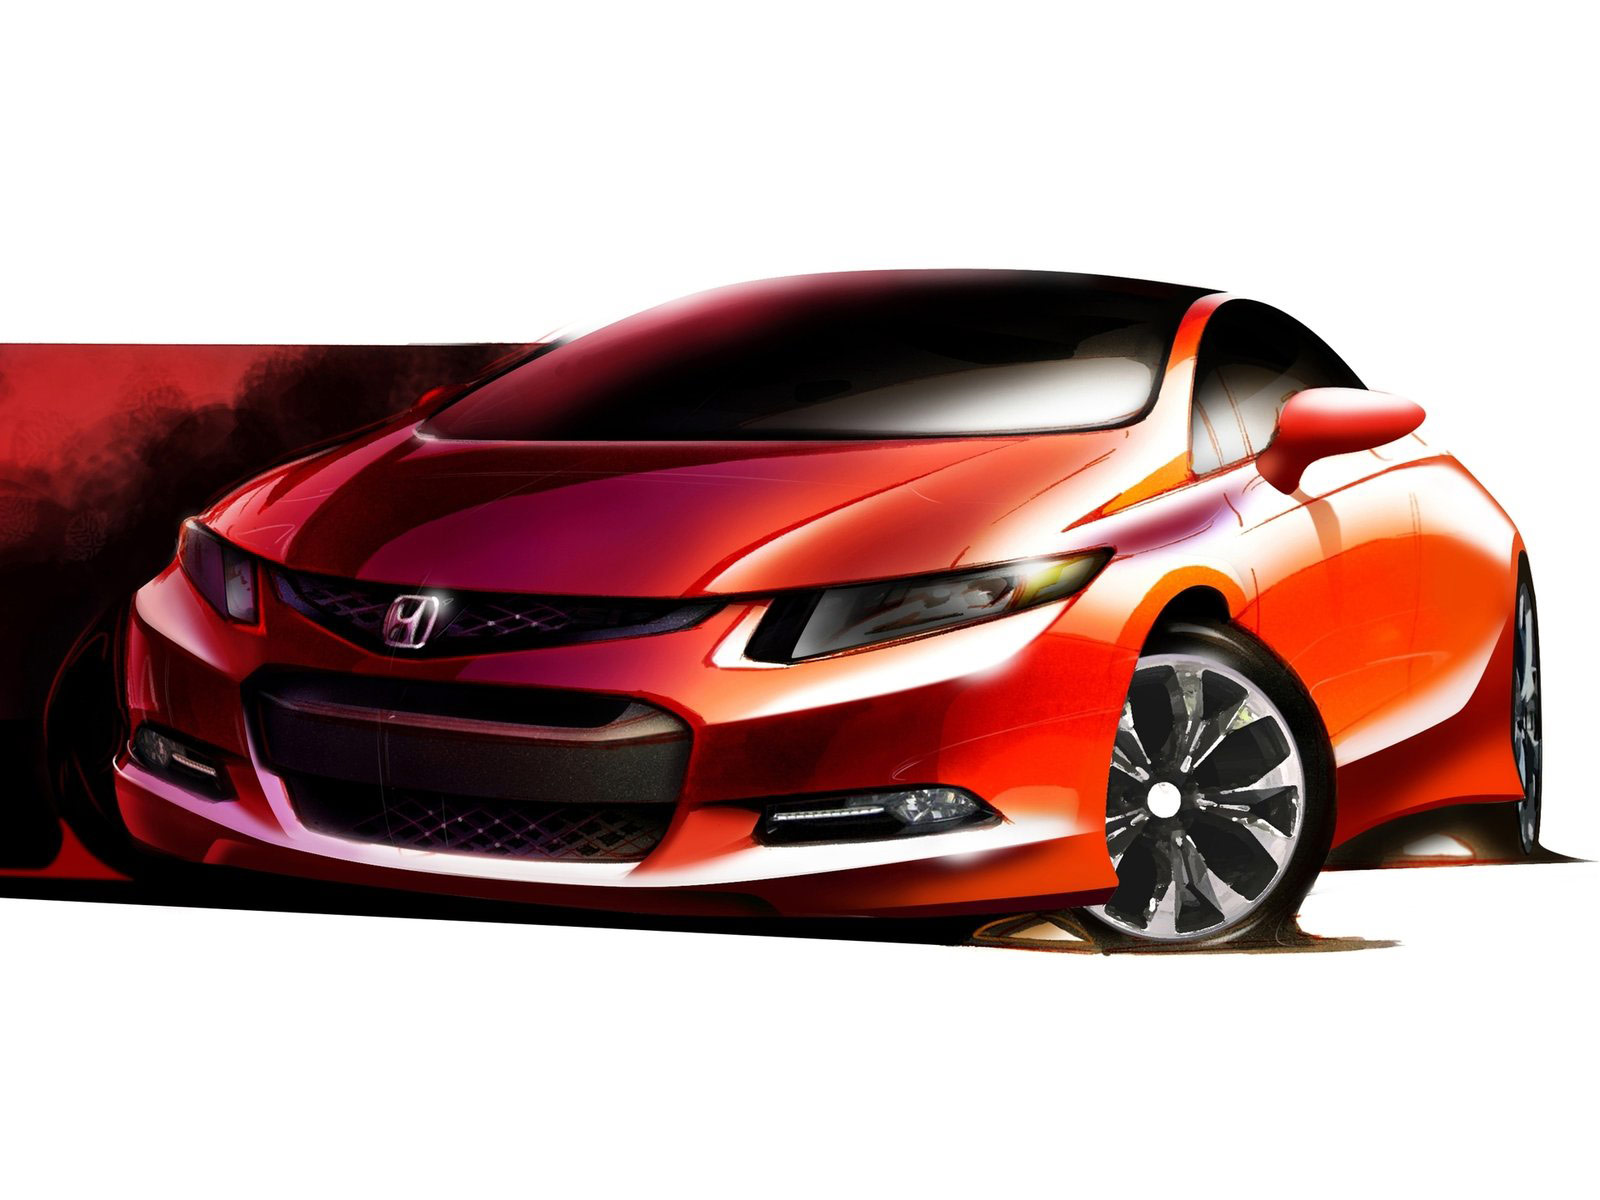 2011 HONDA Civic Si Concept pictures | Accident lawyers info